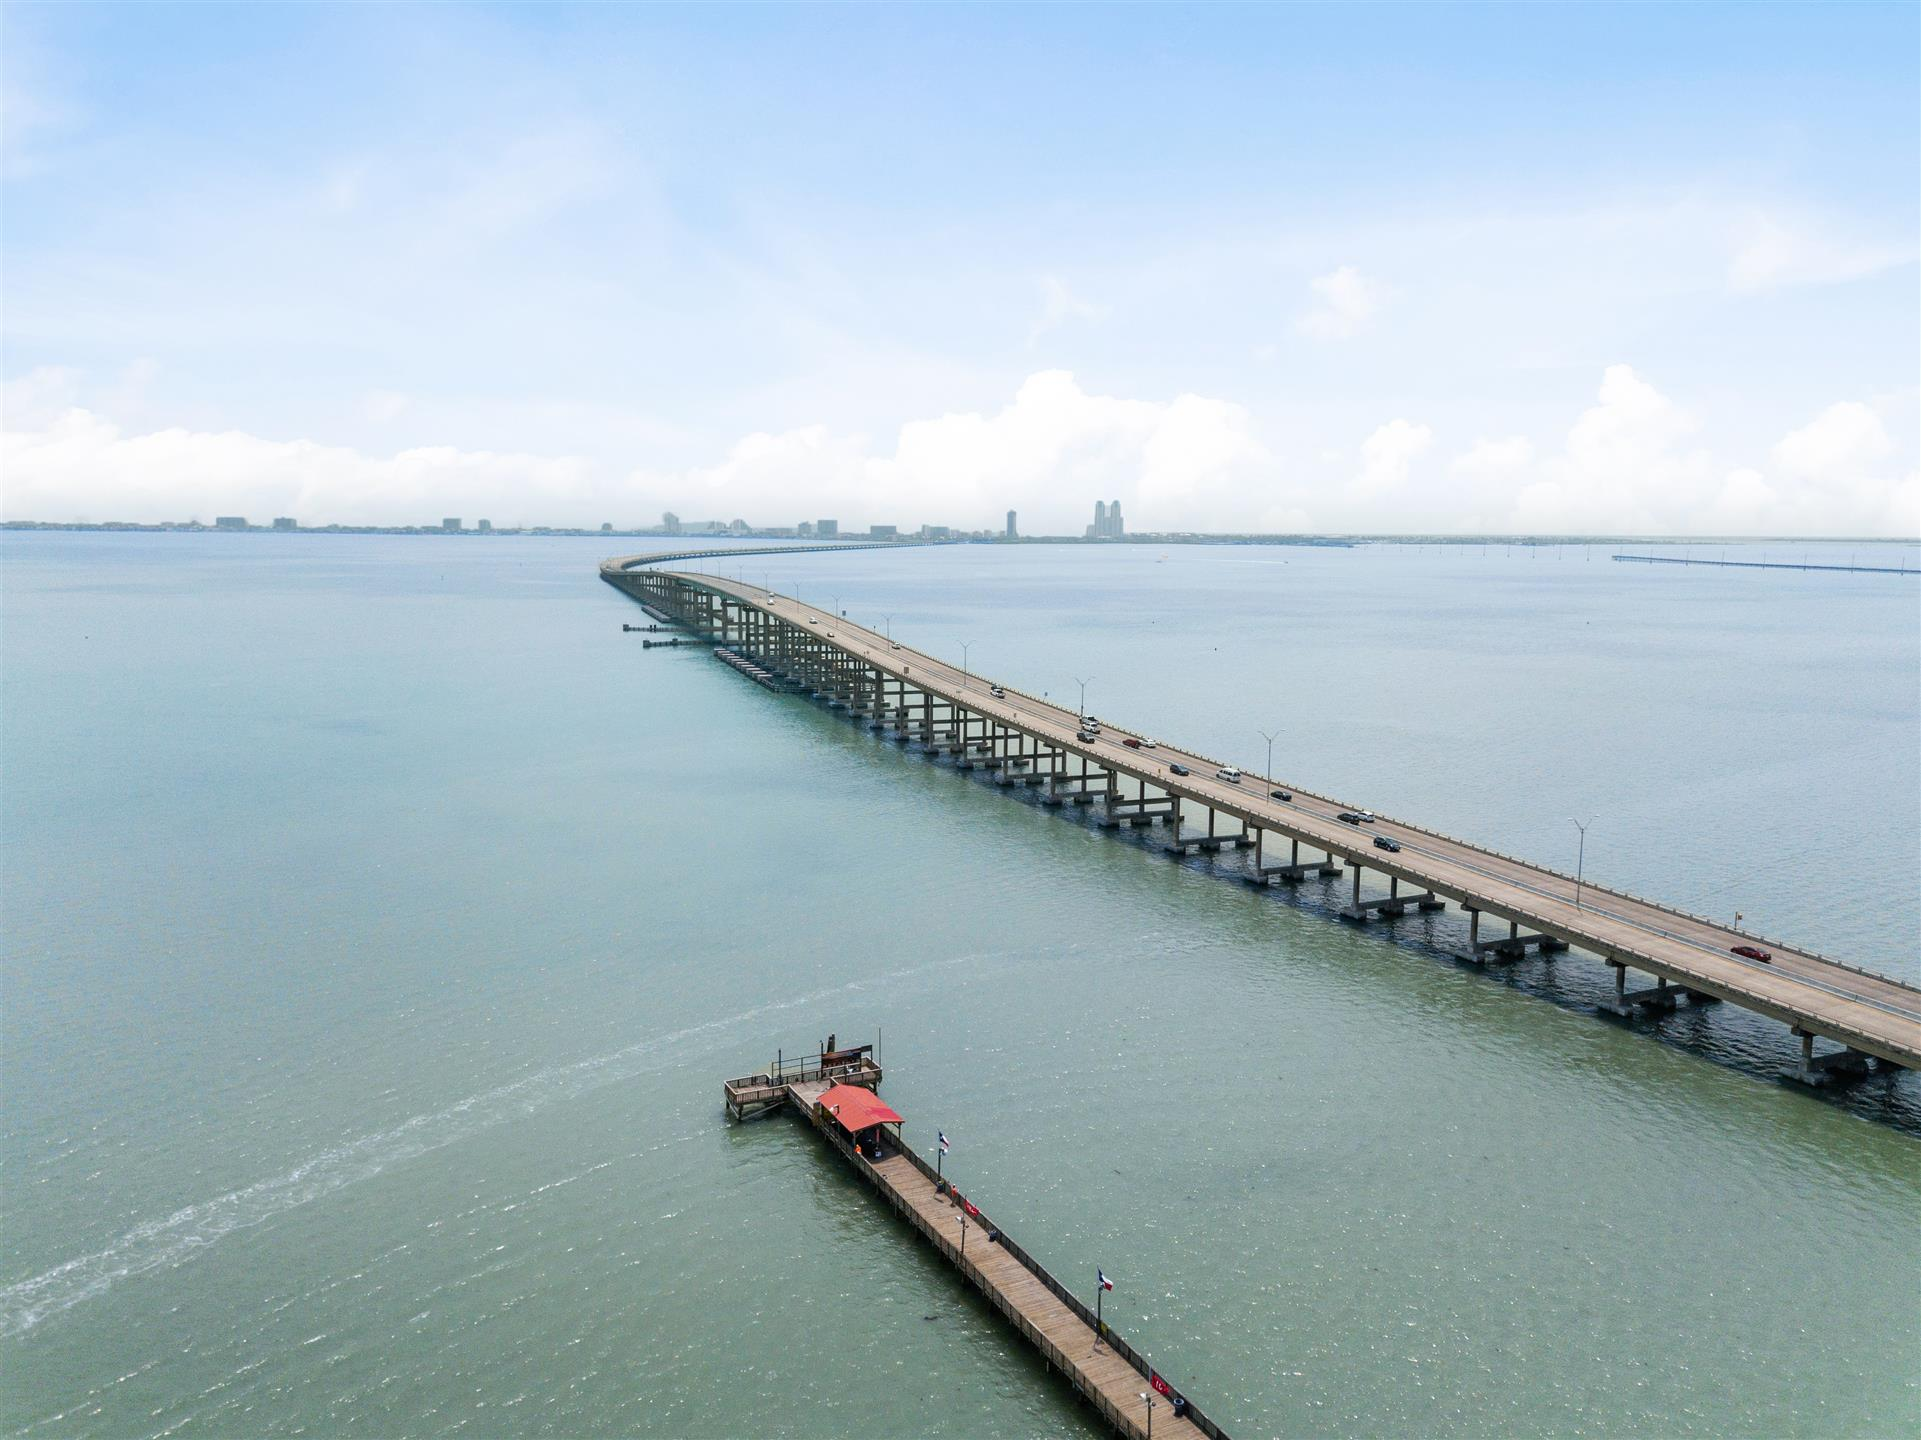 aerial view of Pirate's Fishing Pier and the Causeway